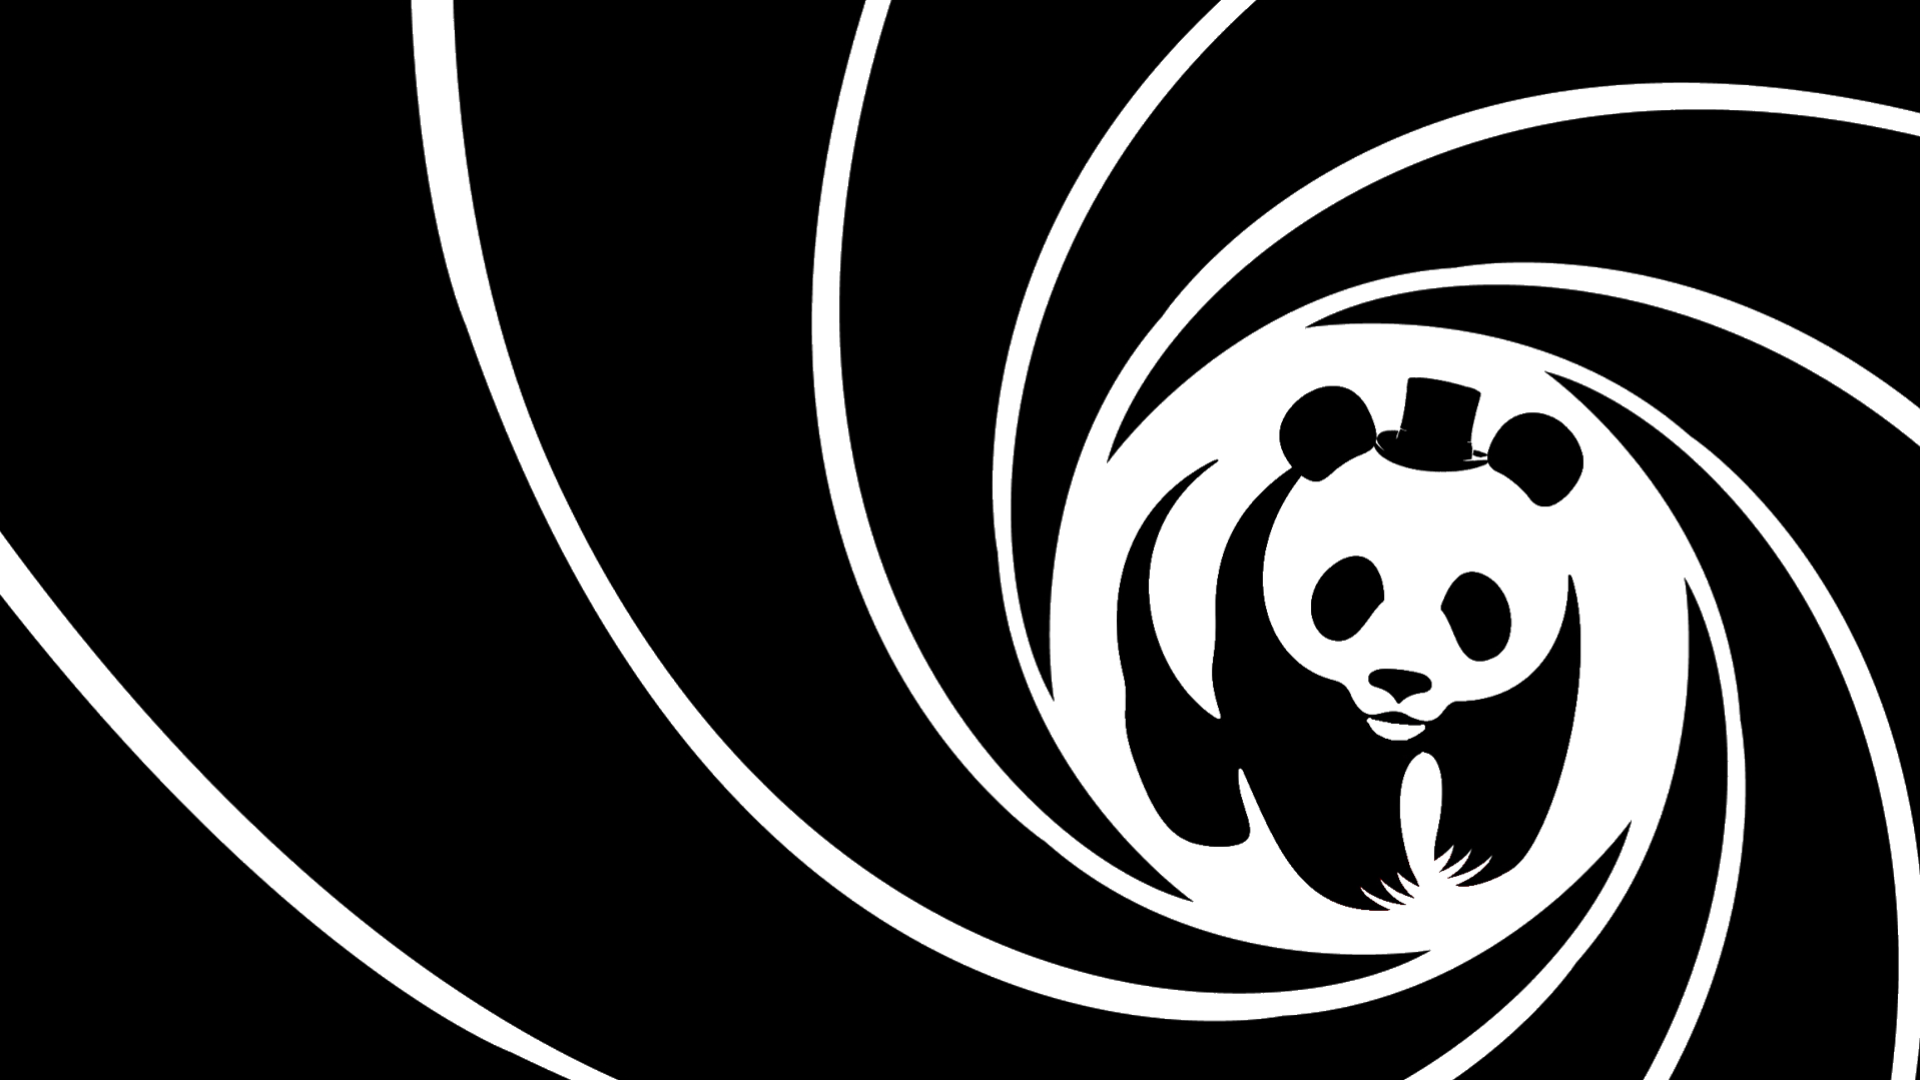 Panda Computer Wallpapers Desktop Backgrounds 1920x1080 ID235499 1920x1080